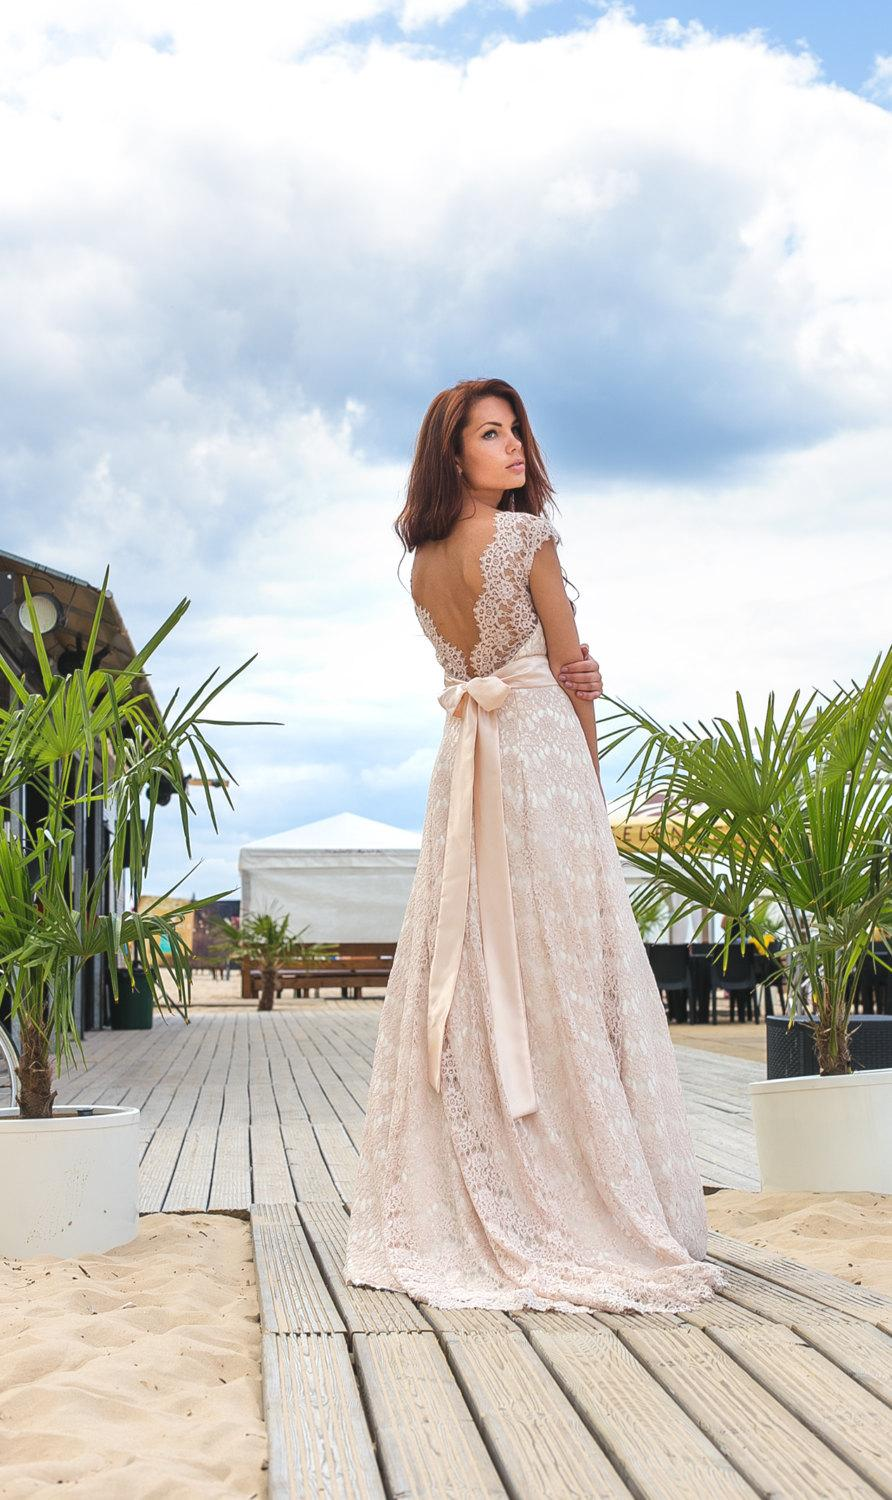 bohemian style weddings bohemian style wedding dress wedding dress for a bohemian style wedding wonder if i could pull this